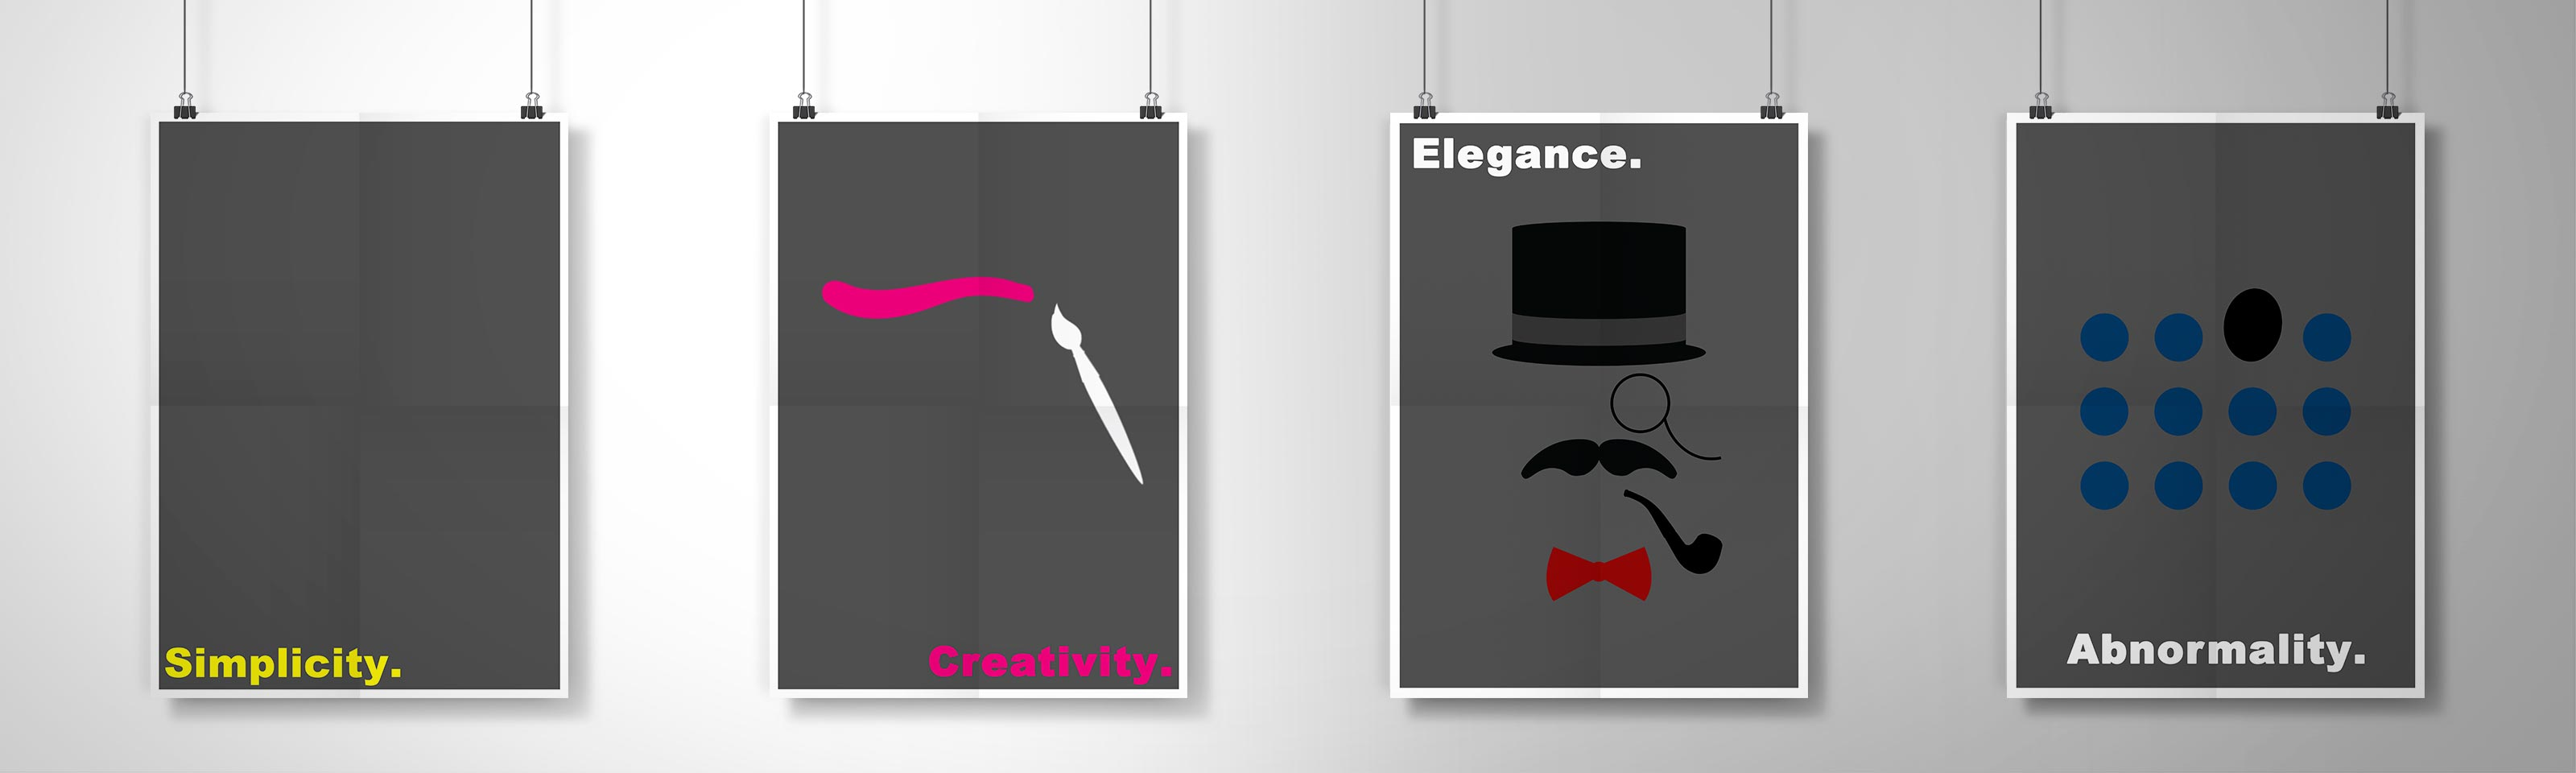 4 posters describing 4 words